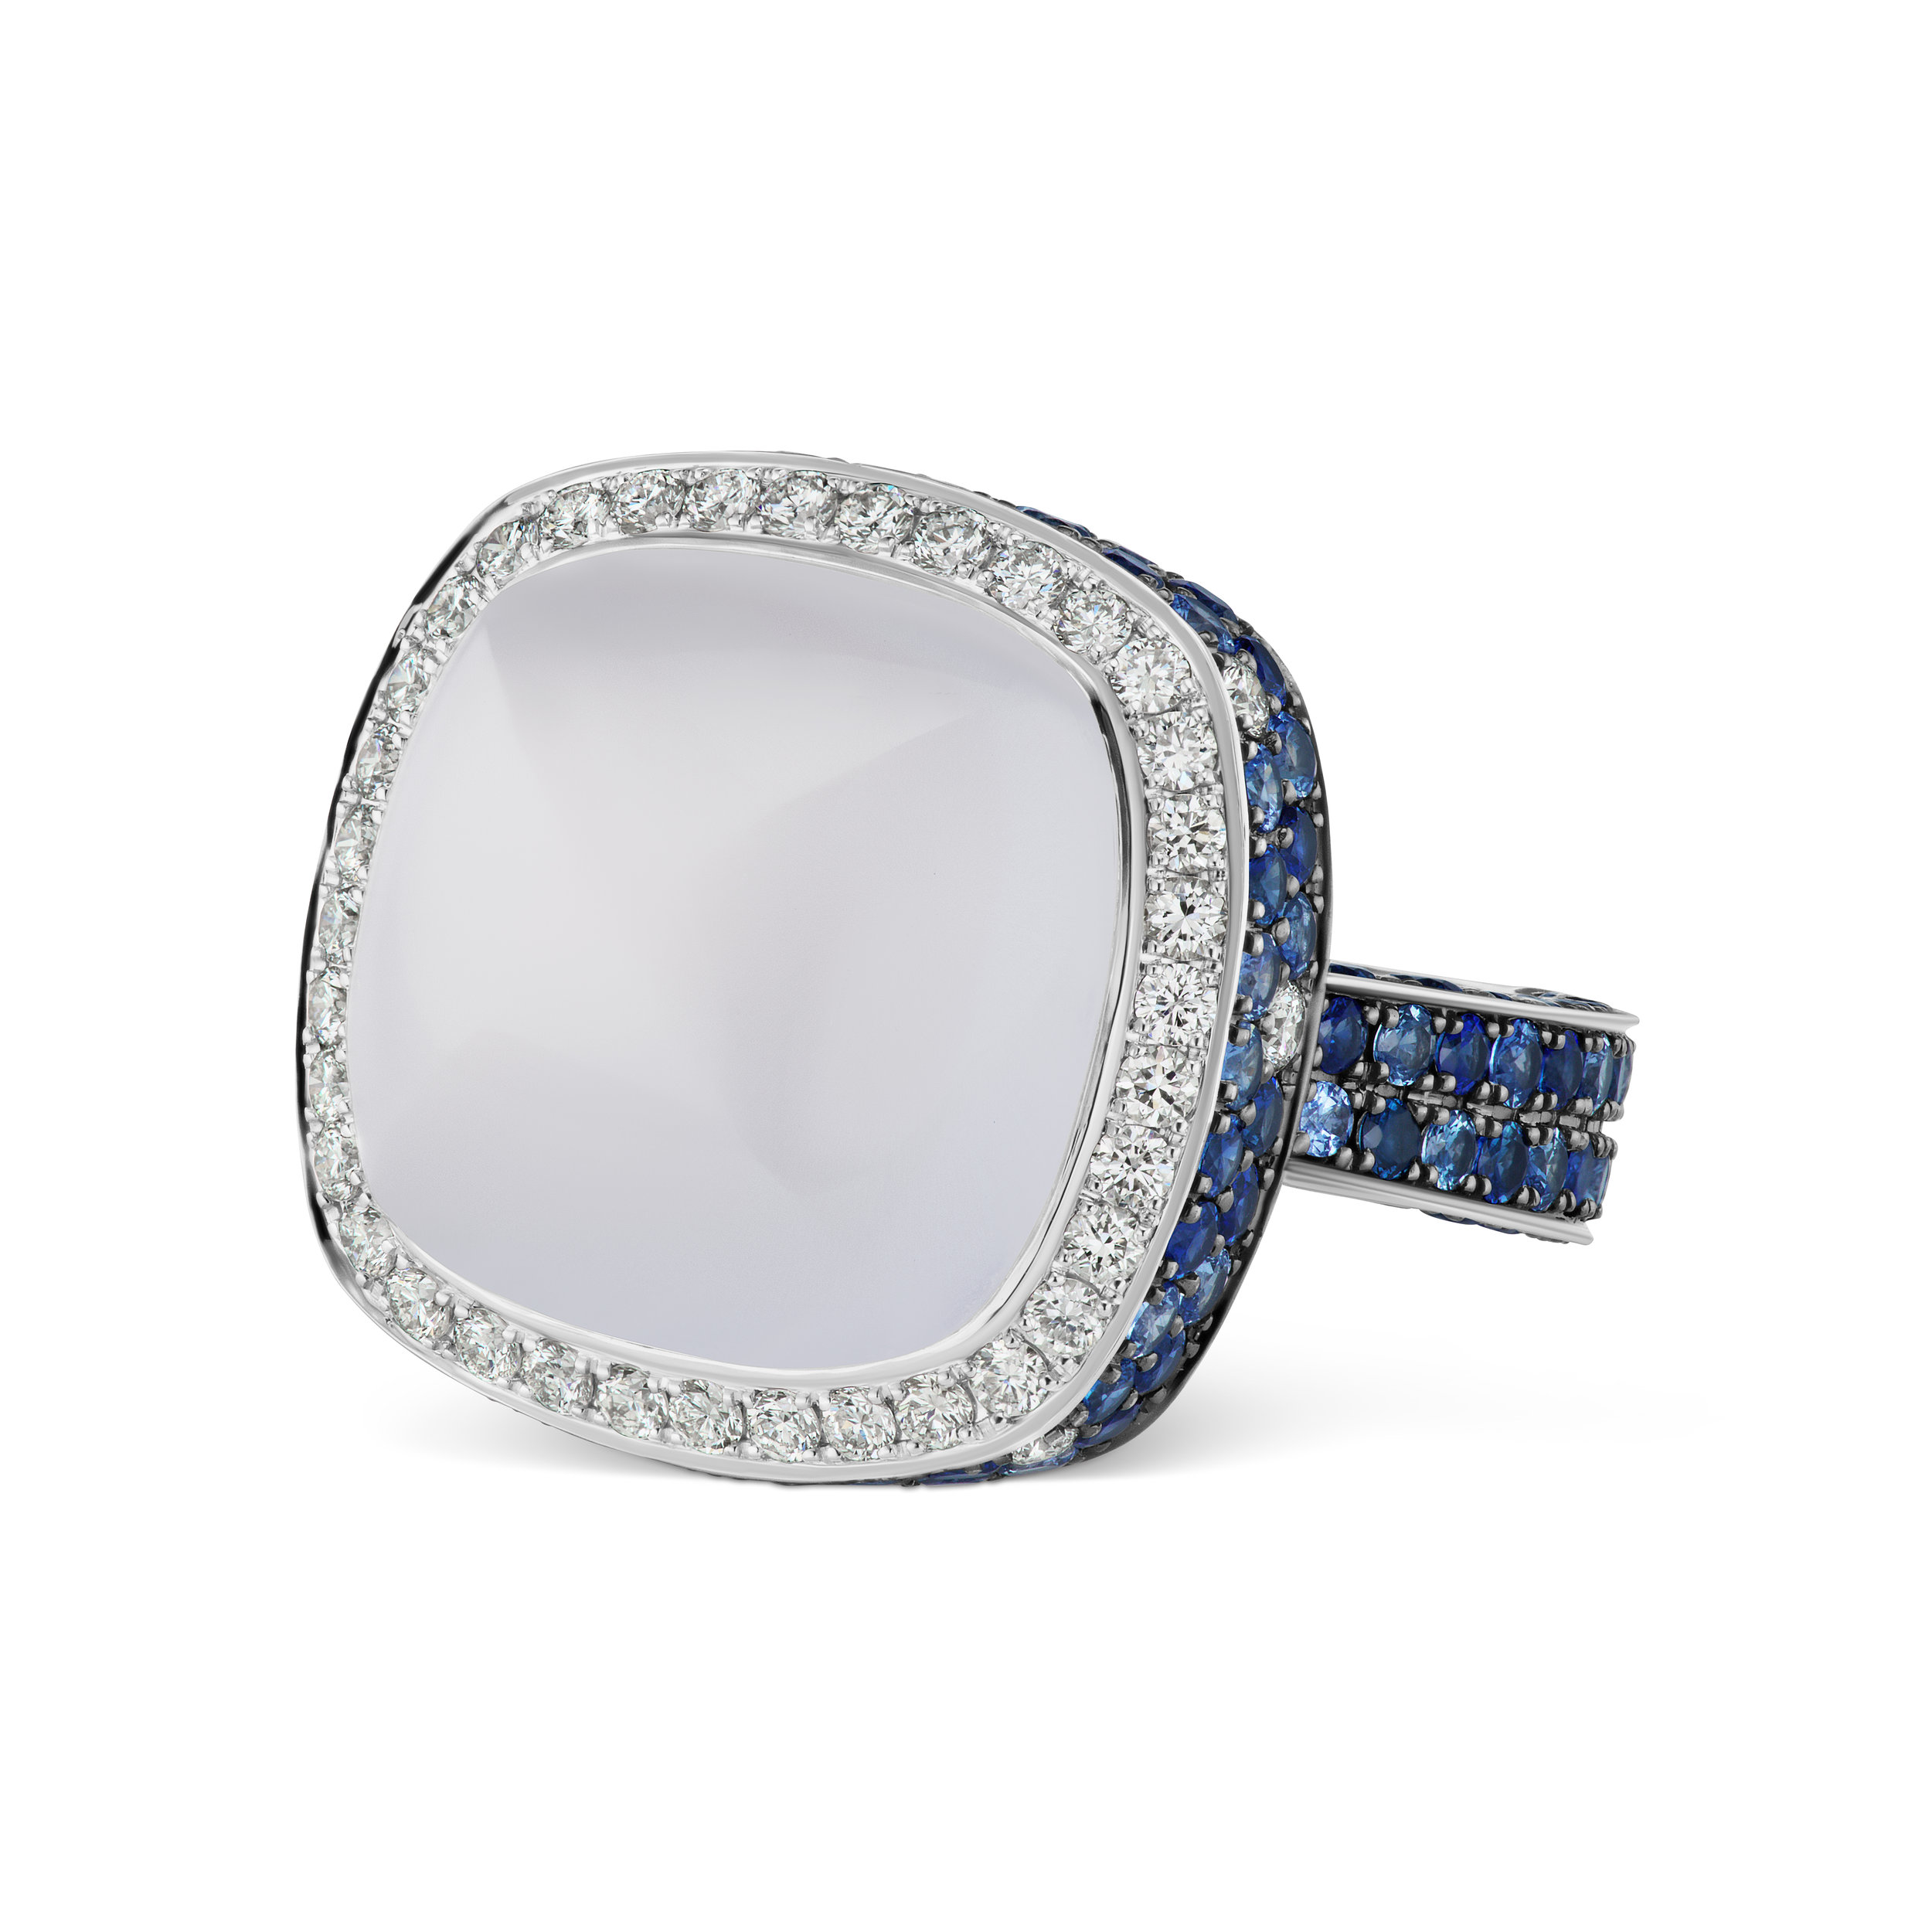 Moonstone ring with micropave diamond trim and sapphire band, mounted in platinum.